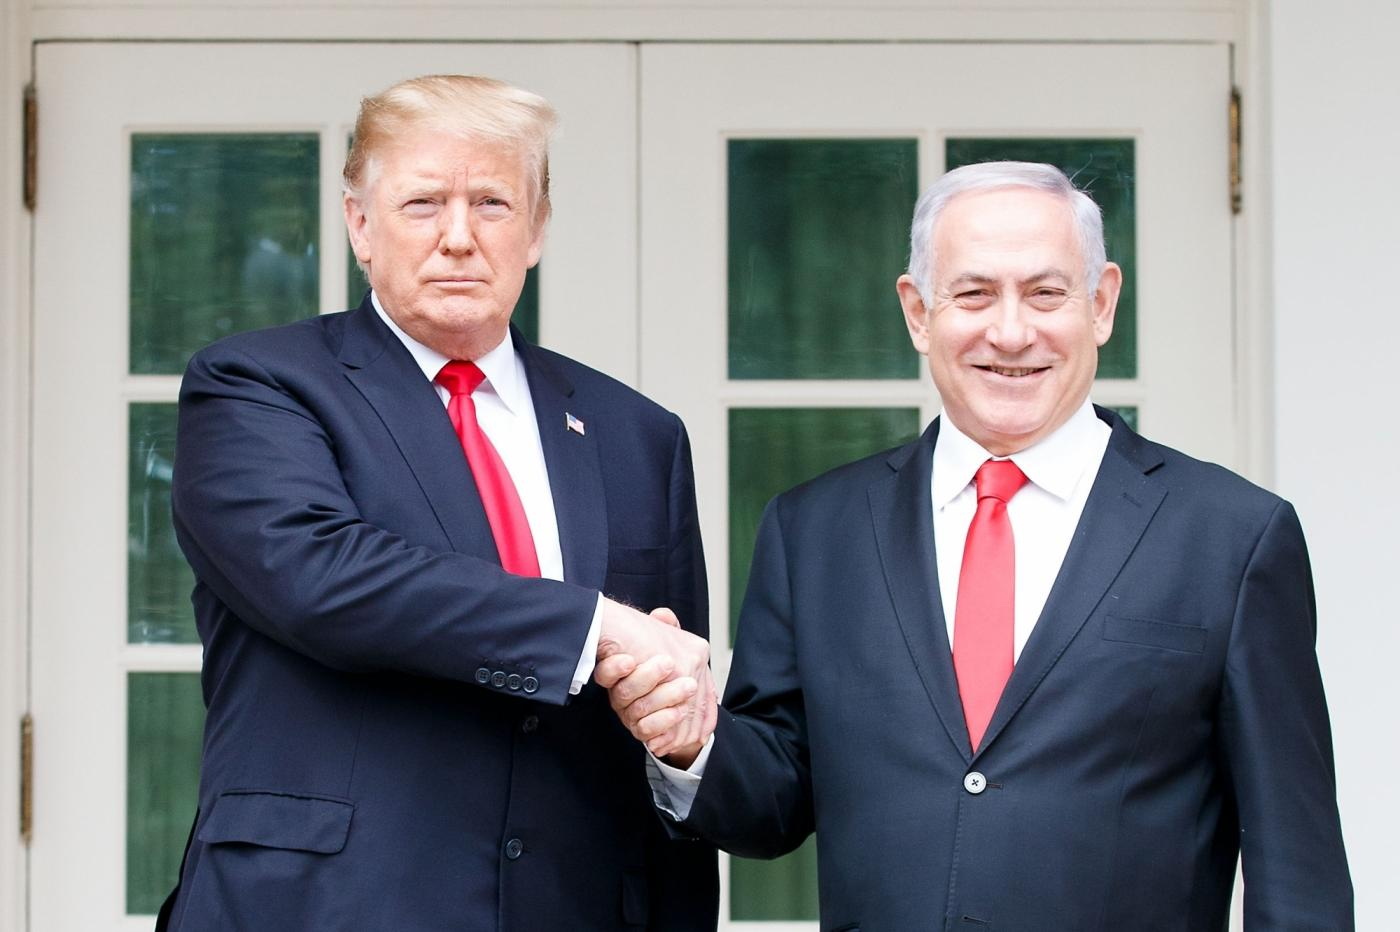 WASHINGTON, March 25, 2019 (Xinhua) -- U.S. President Donald Trump (L) shakes hands with Israeli Prime Minister Benjamin Netanyahu during their meeting at the White House in Washington D.C., the United States, on March 25, 2019. U.S. President Donald Trump on Monday signed a proclamation recognizing Israel's sovereignty over the disputed Golan Heights, territory that Israel seized from Syria in 1967. (Xinhua/Ting Shen/IANS) by .